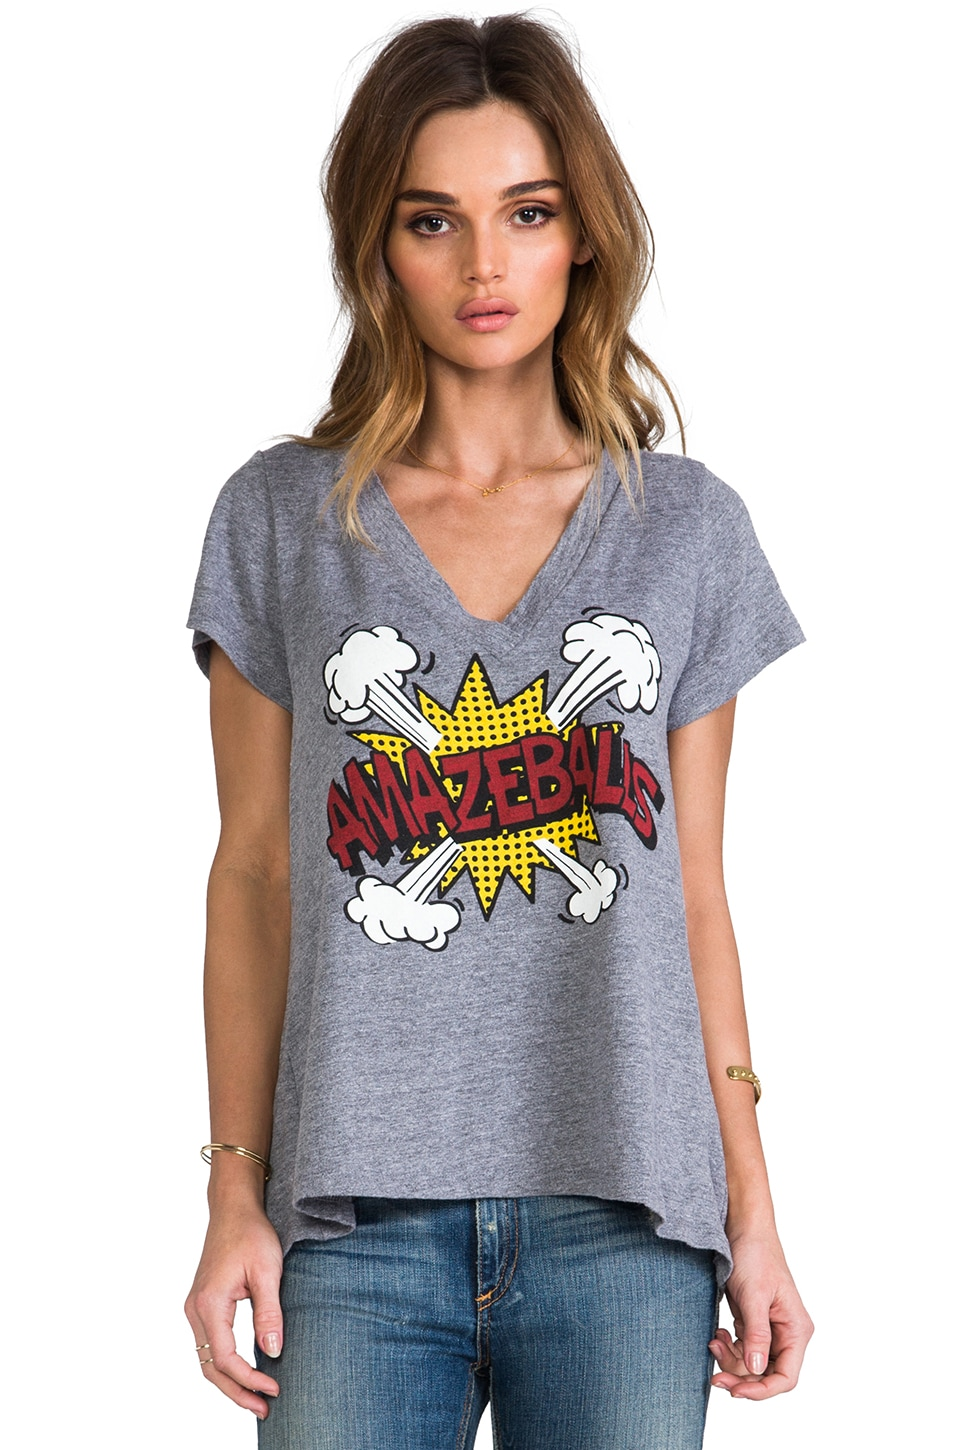 Local Celebrity Amazeballs Jovi Tee in Heather Grey